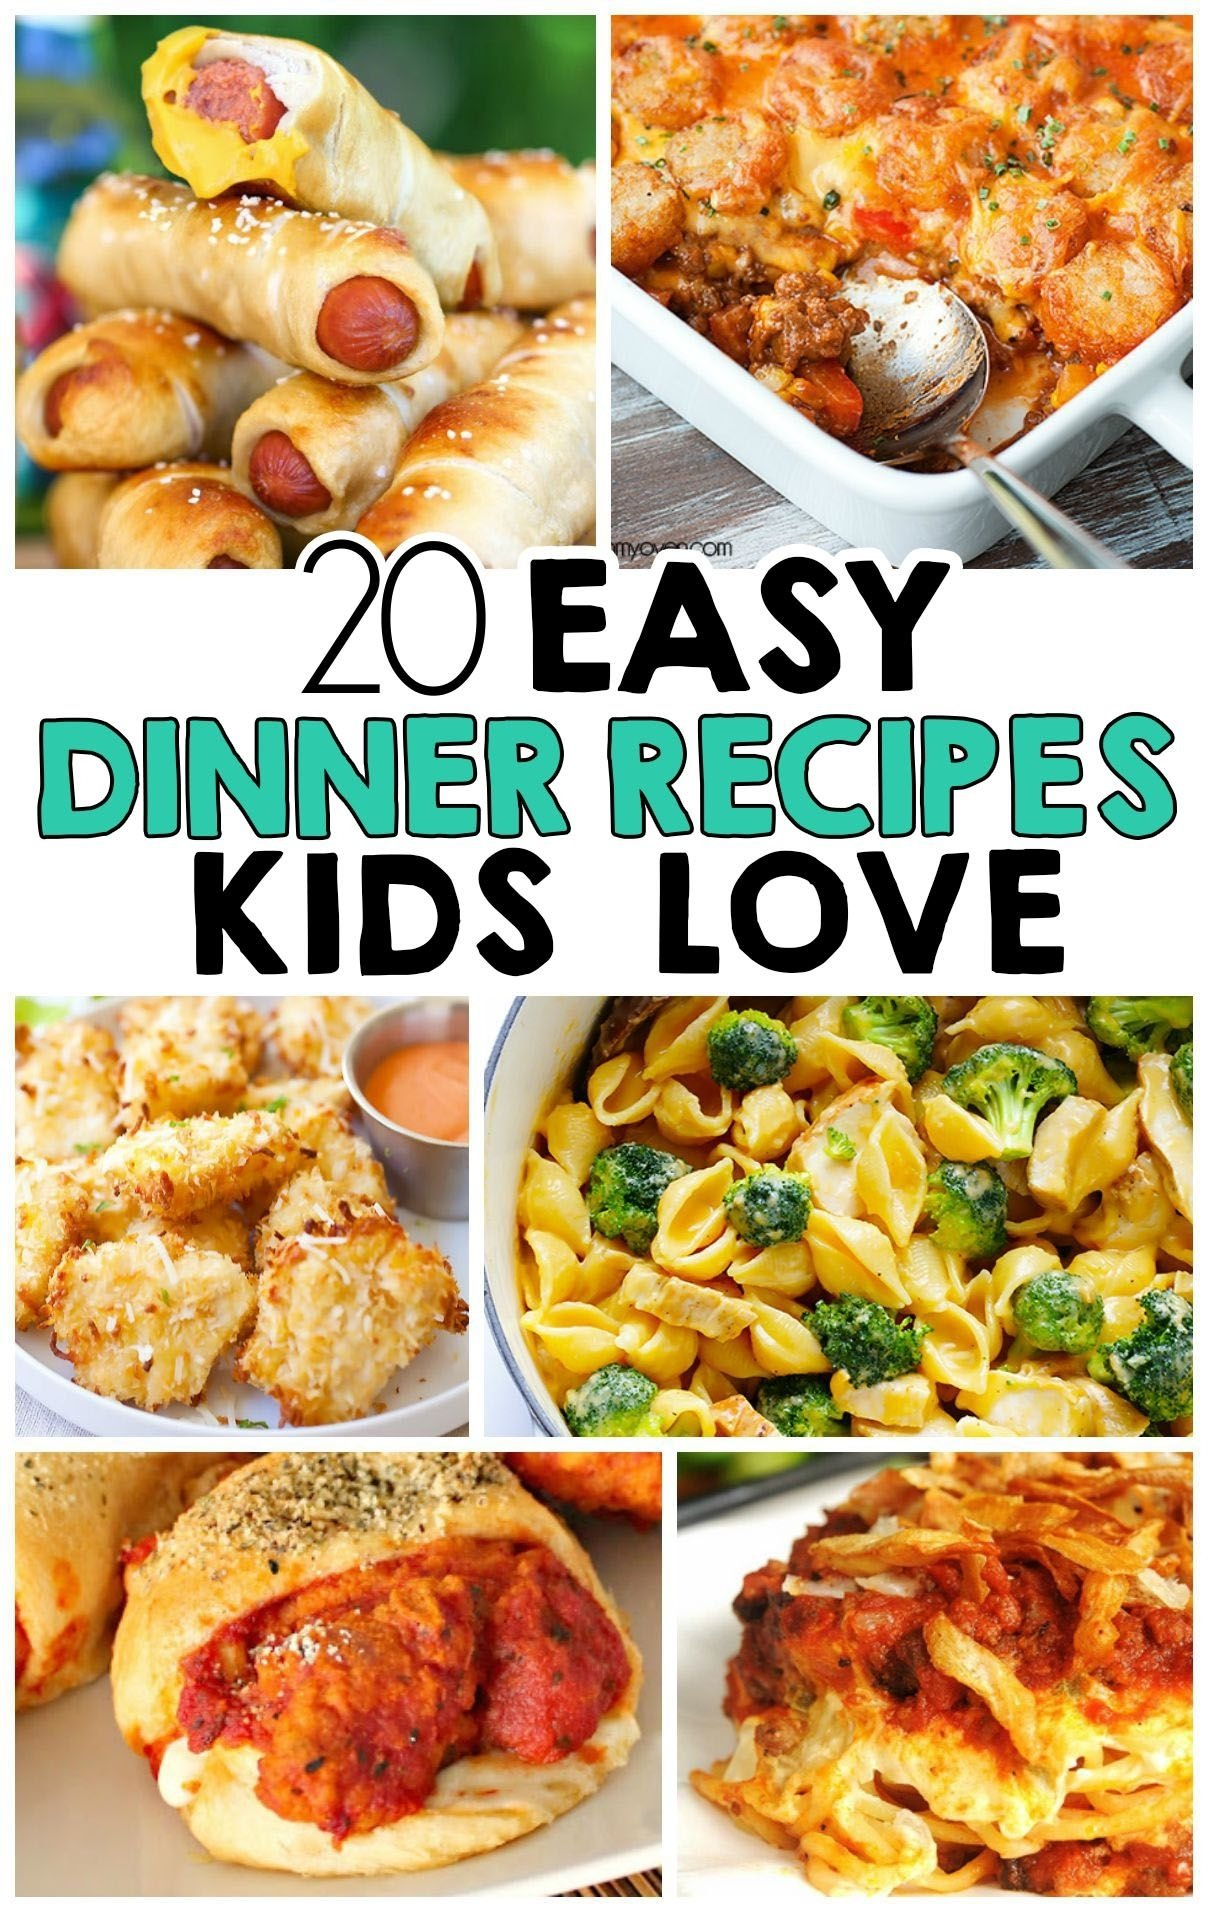 10 Fabulous Easy Dinner Ideas For Picky Eaters 20 easy dinner recipes that kids love dinners easy and recipes 5 2021